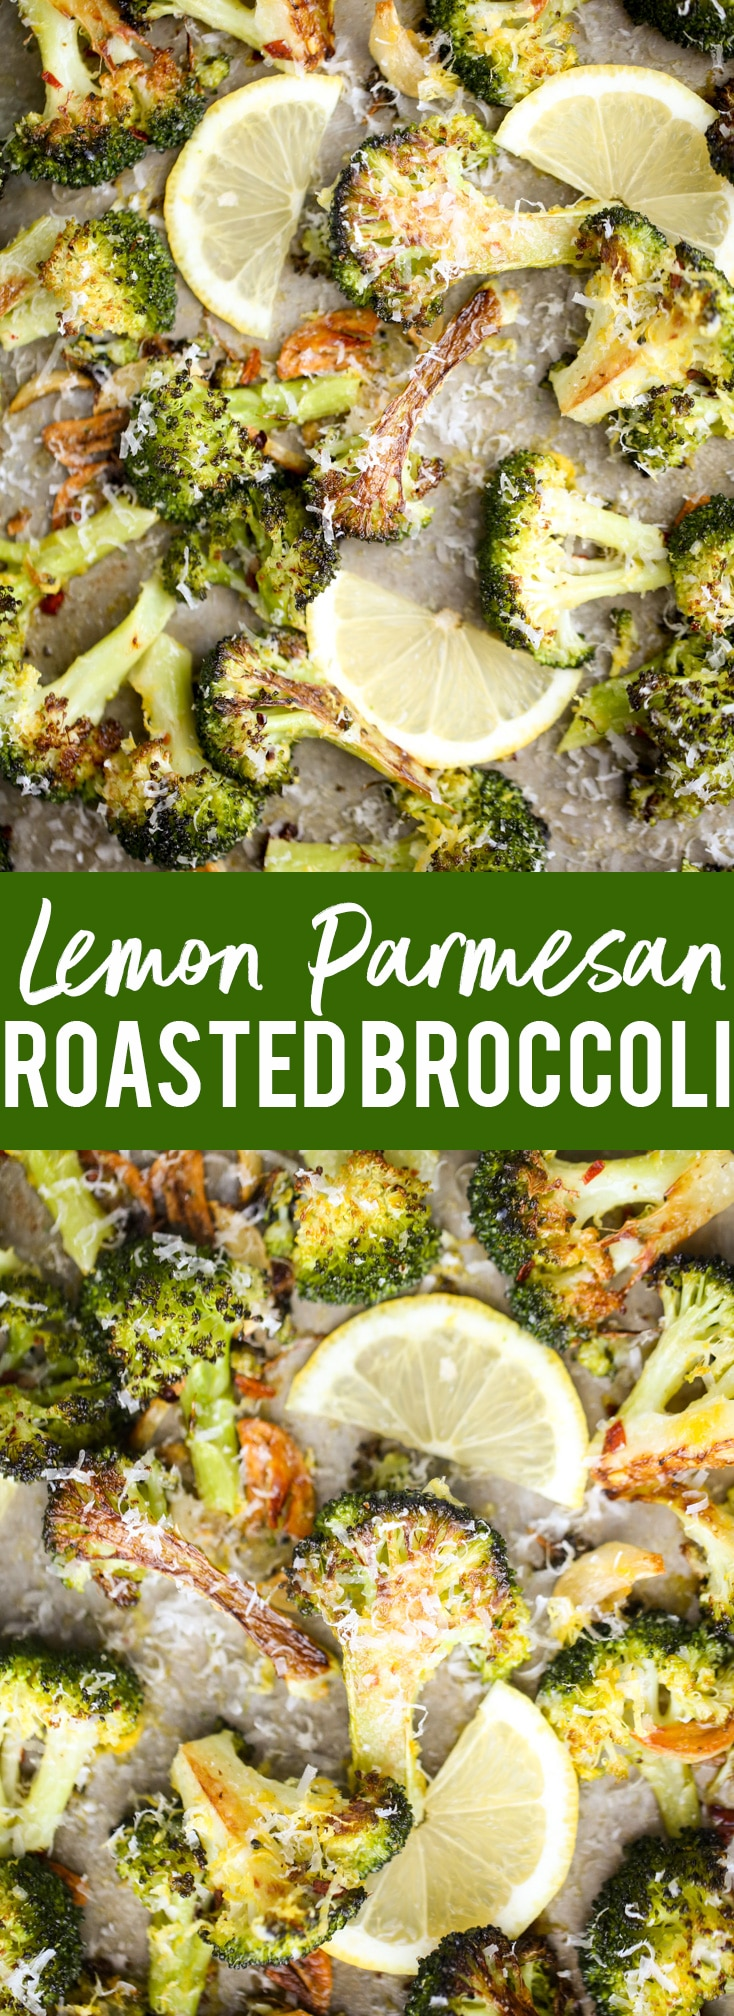 ina garten broccoli. roasted broccoli with toasted almonds and a